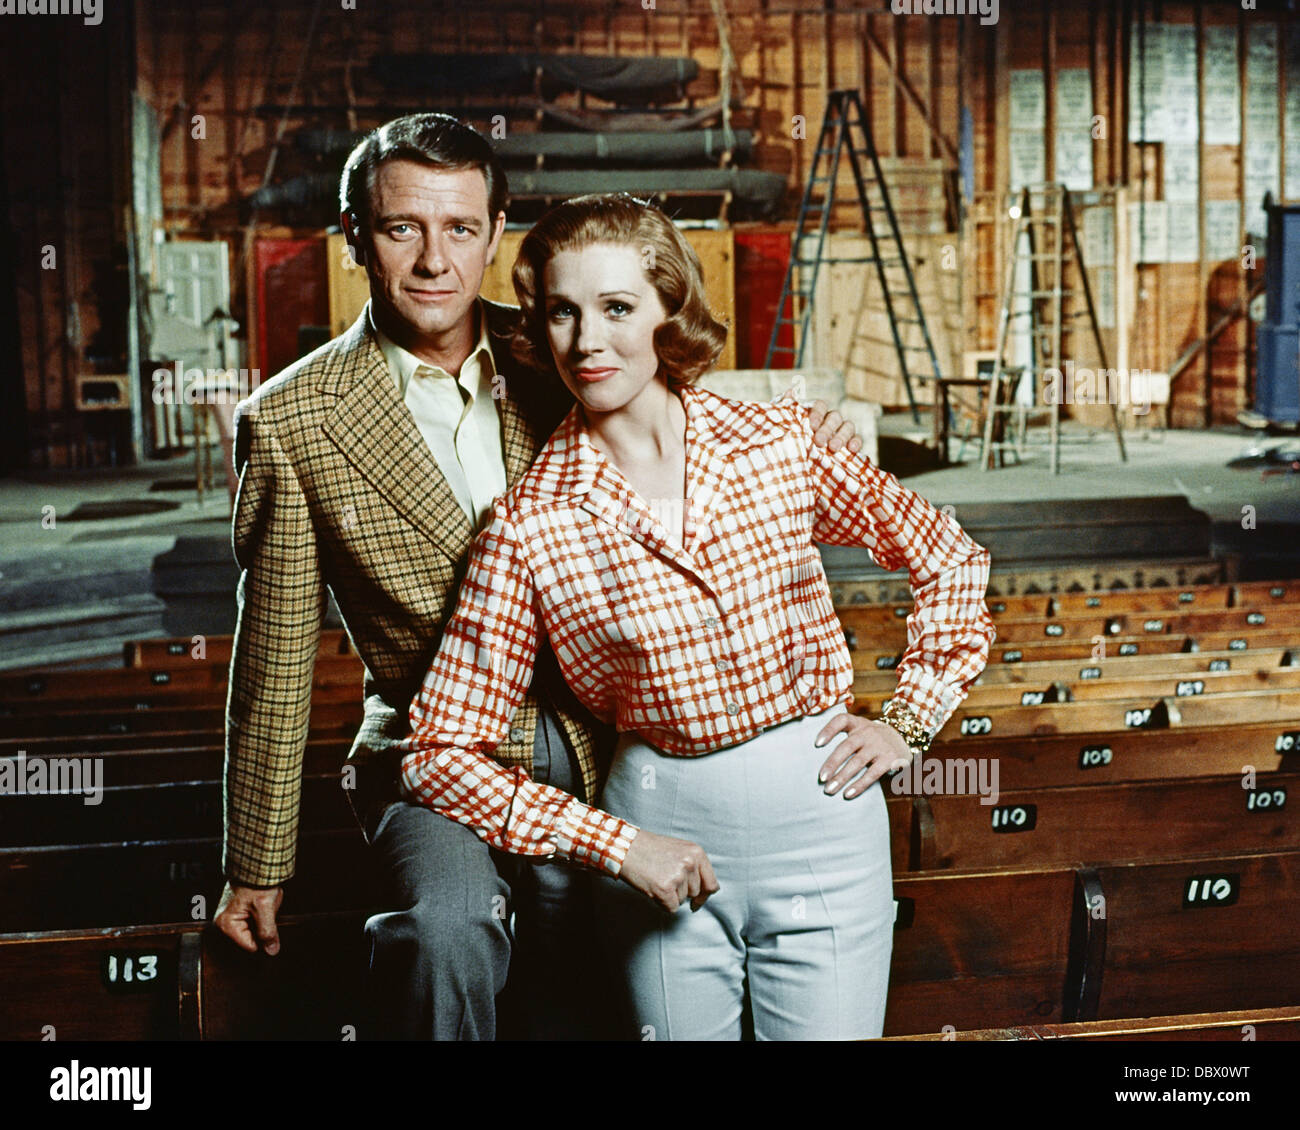 1960s 1968 STAR BIOPIC ABOUT GERTRUDE LAWRENCE JULIE ANDREWS, RICHARD CRENNA LOOKING AT CAMERA - Stock Image